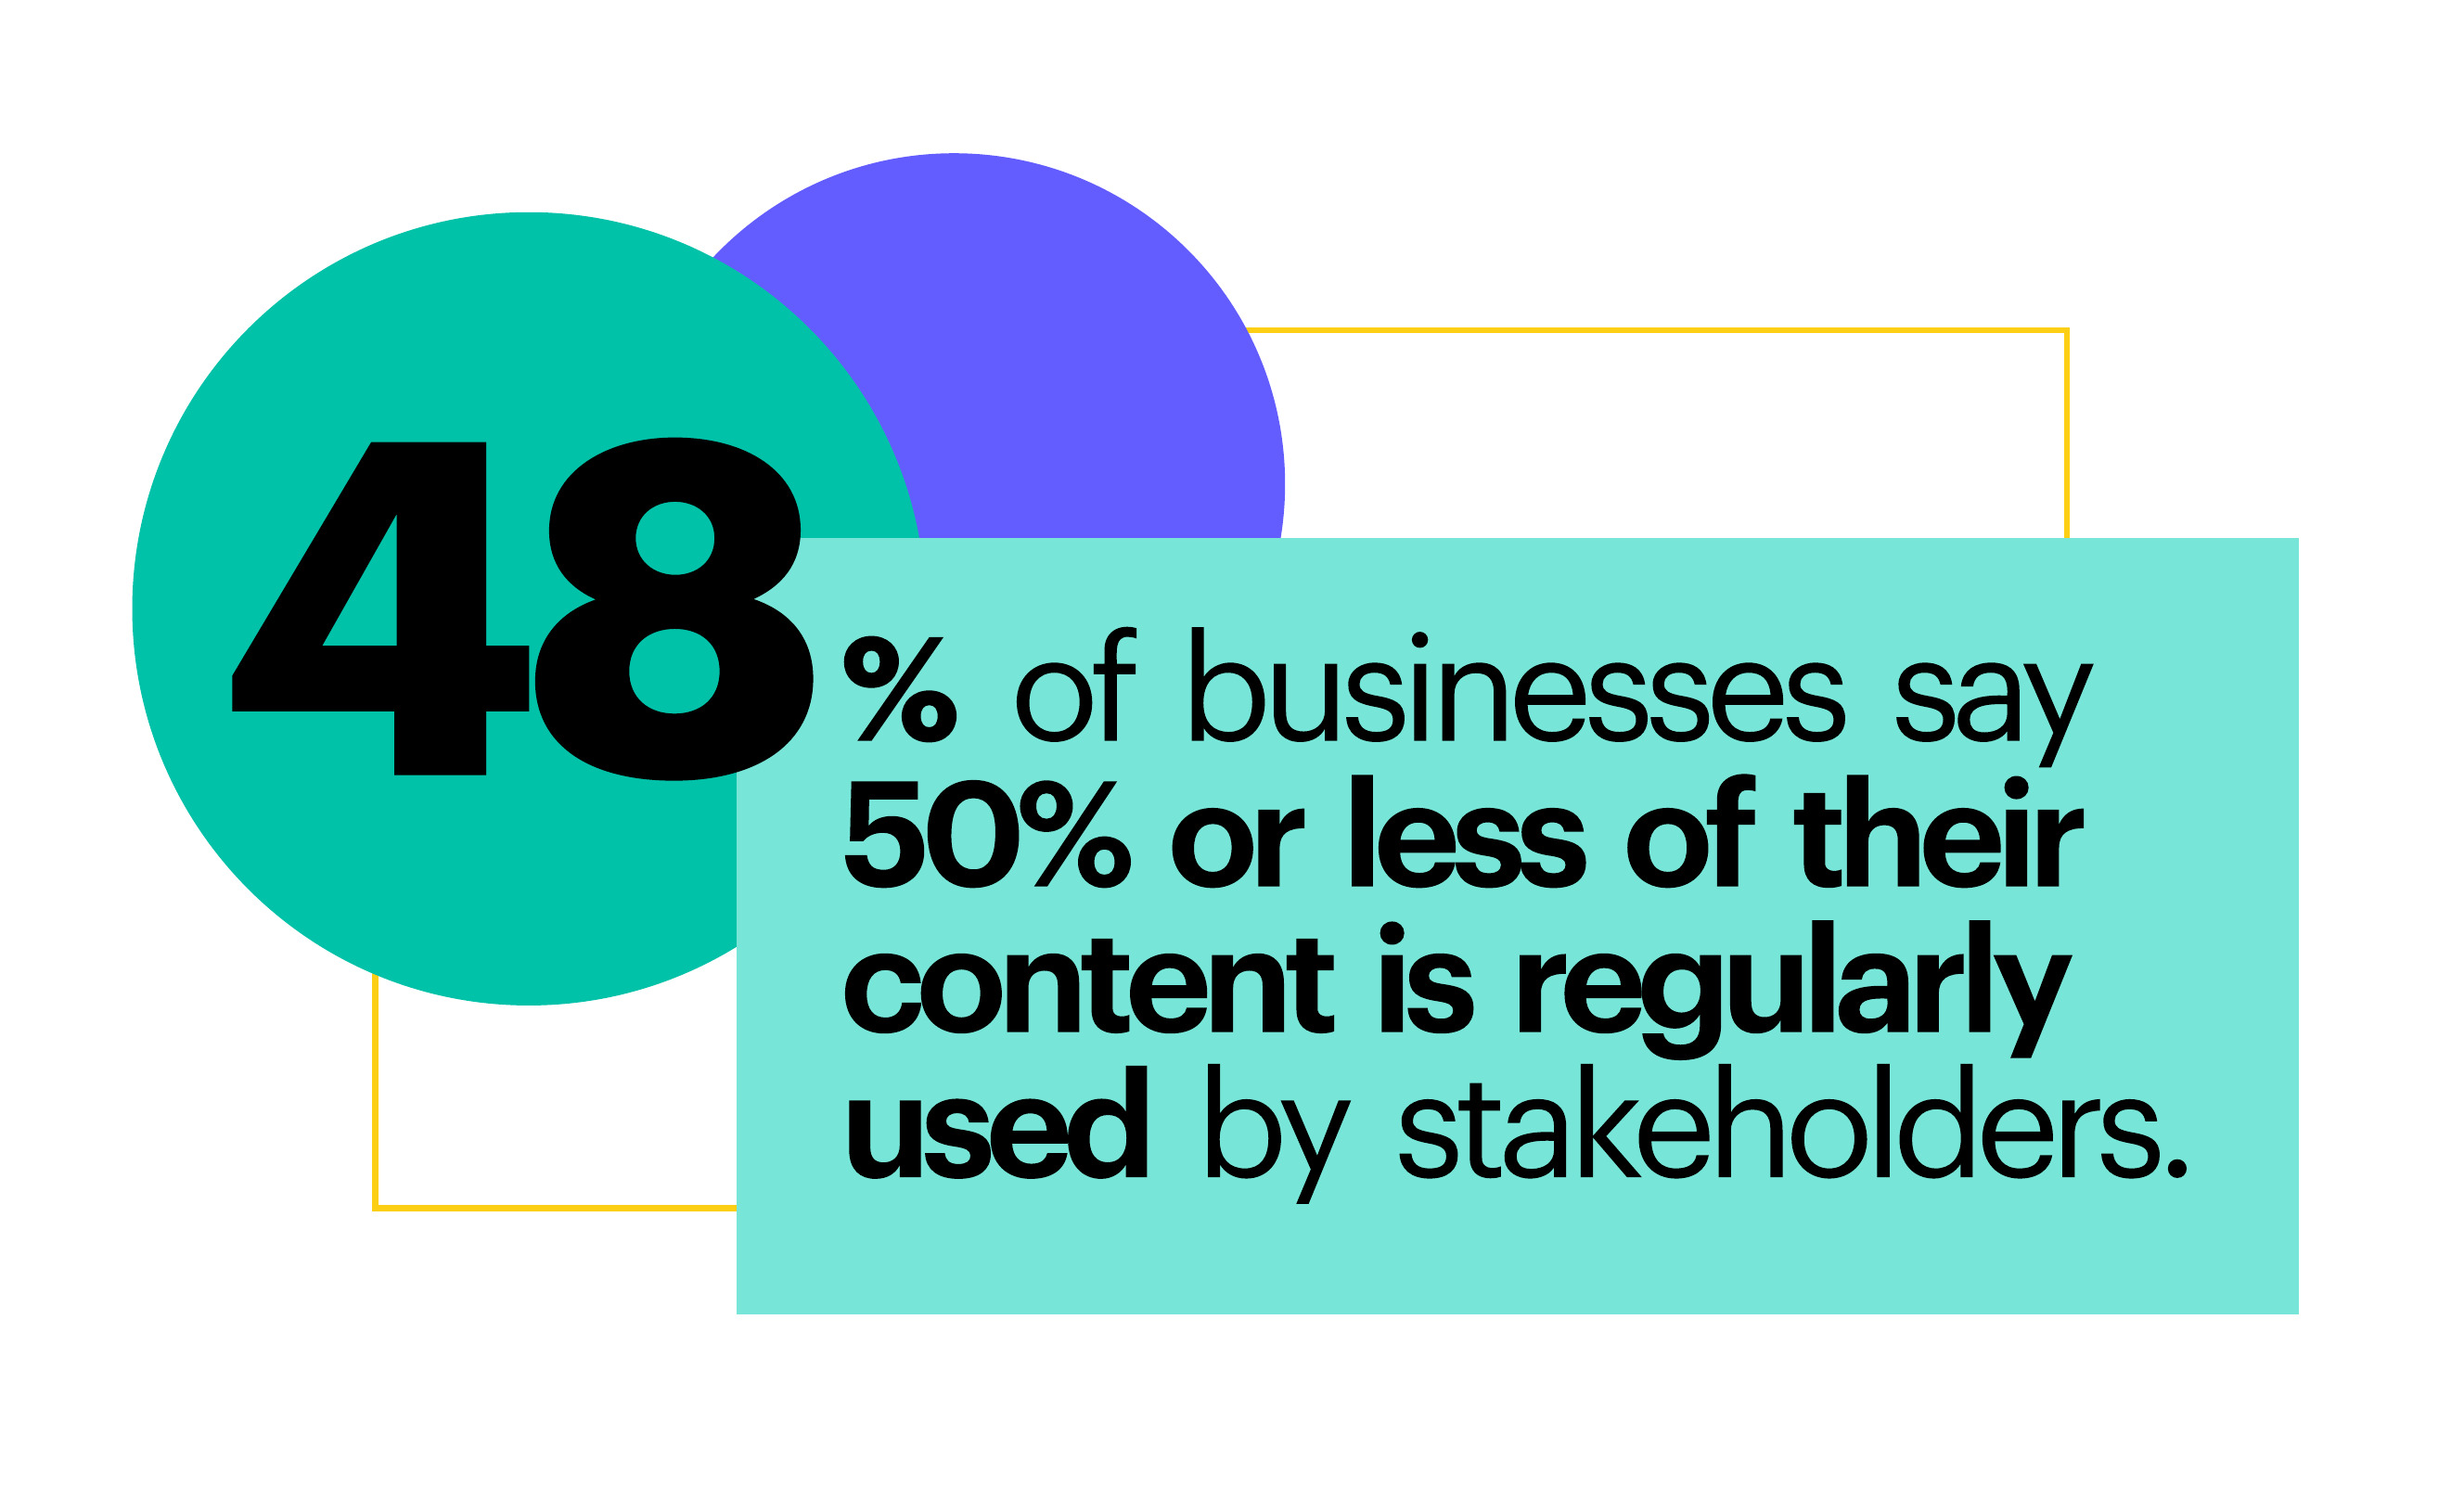 48% of businesses say 50% or less of their content is regularly used by stakeholders.